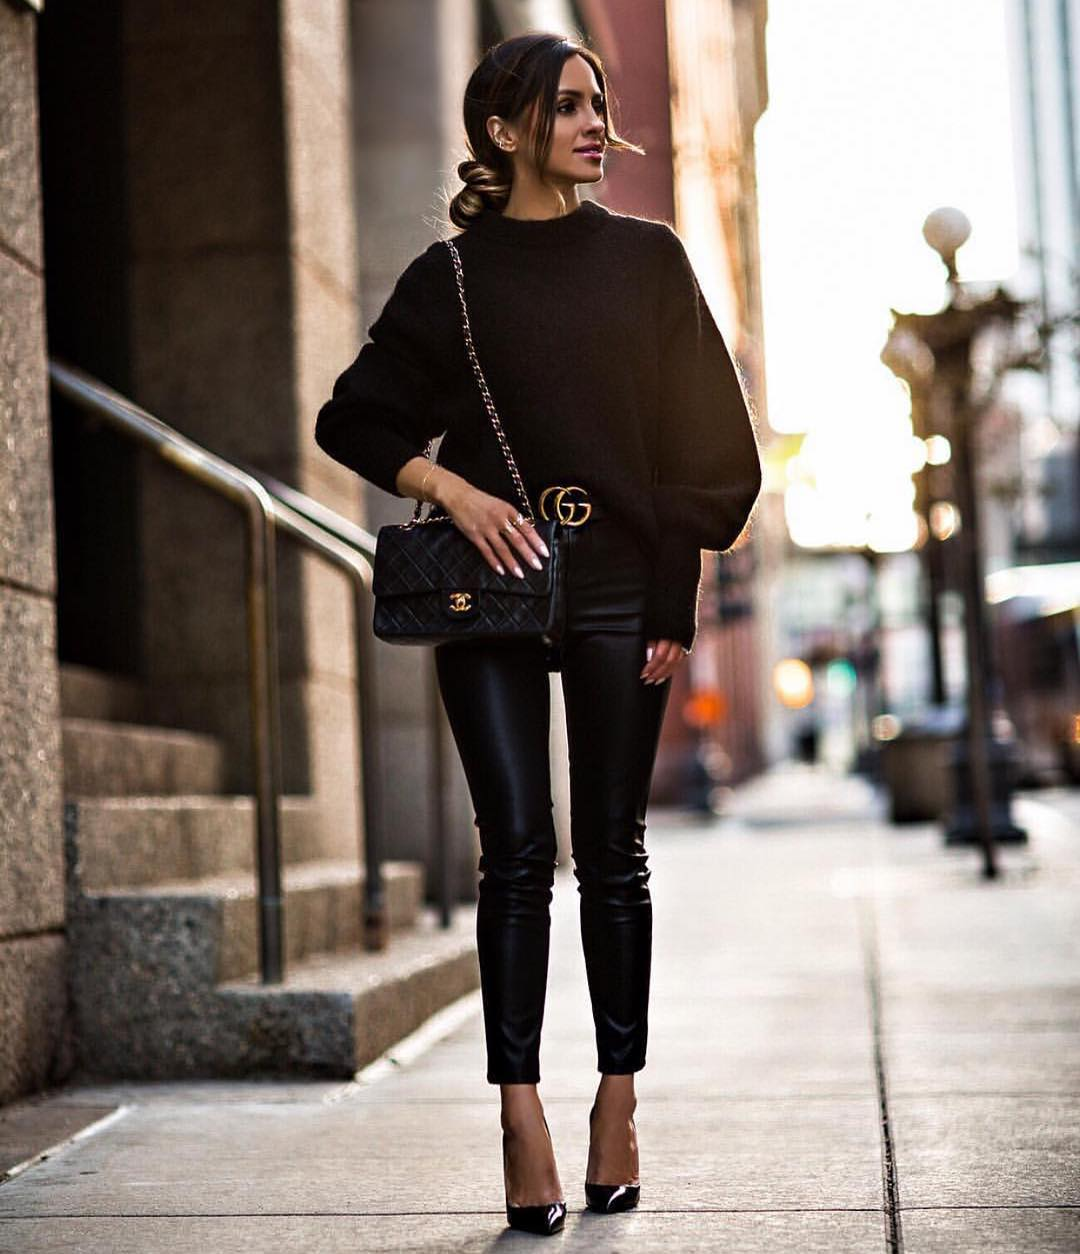 All Black OOTD: Oversized Sweater With Black Leather Skinny Pants And Glossy Pumps 2020